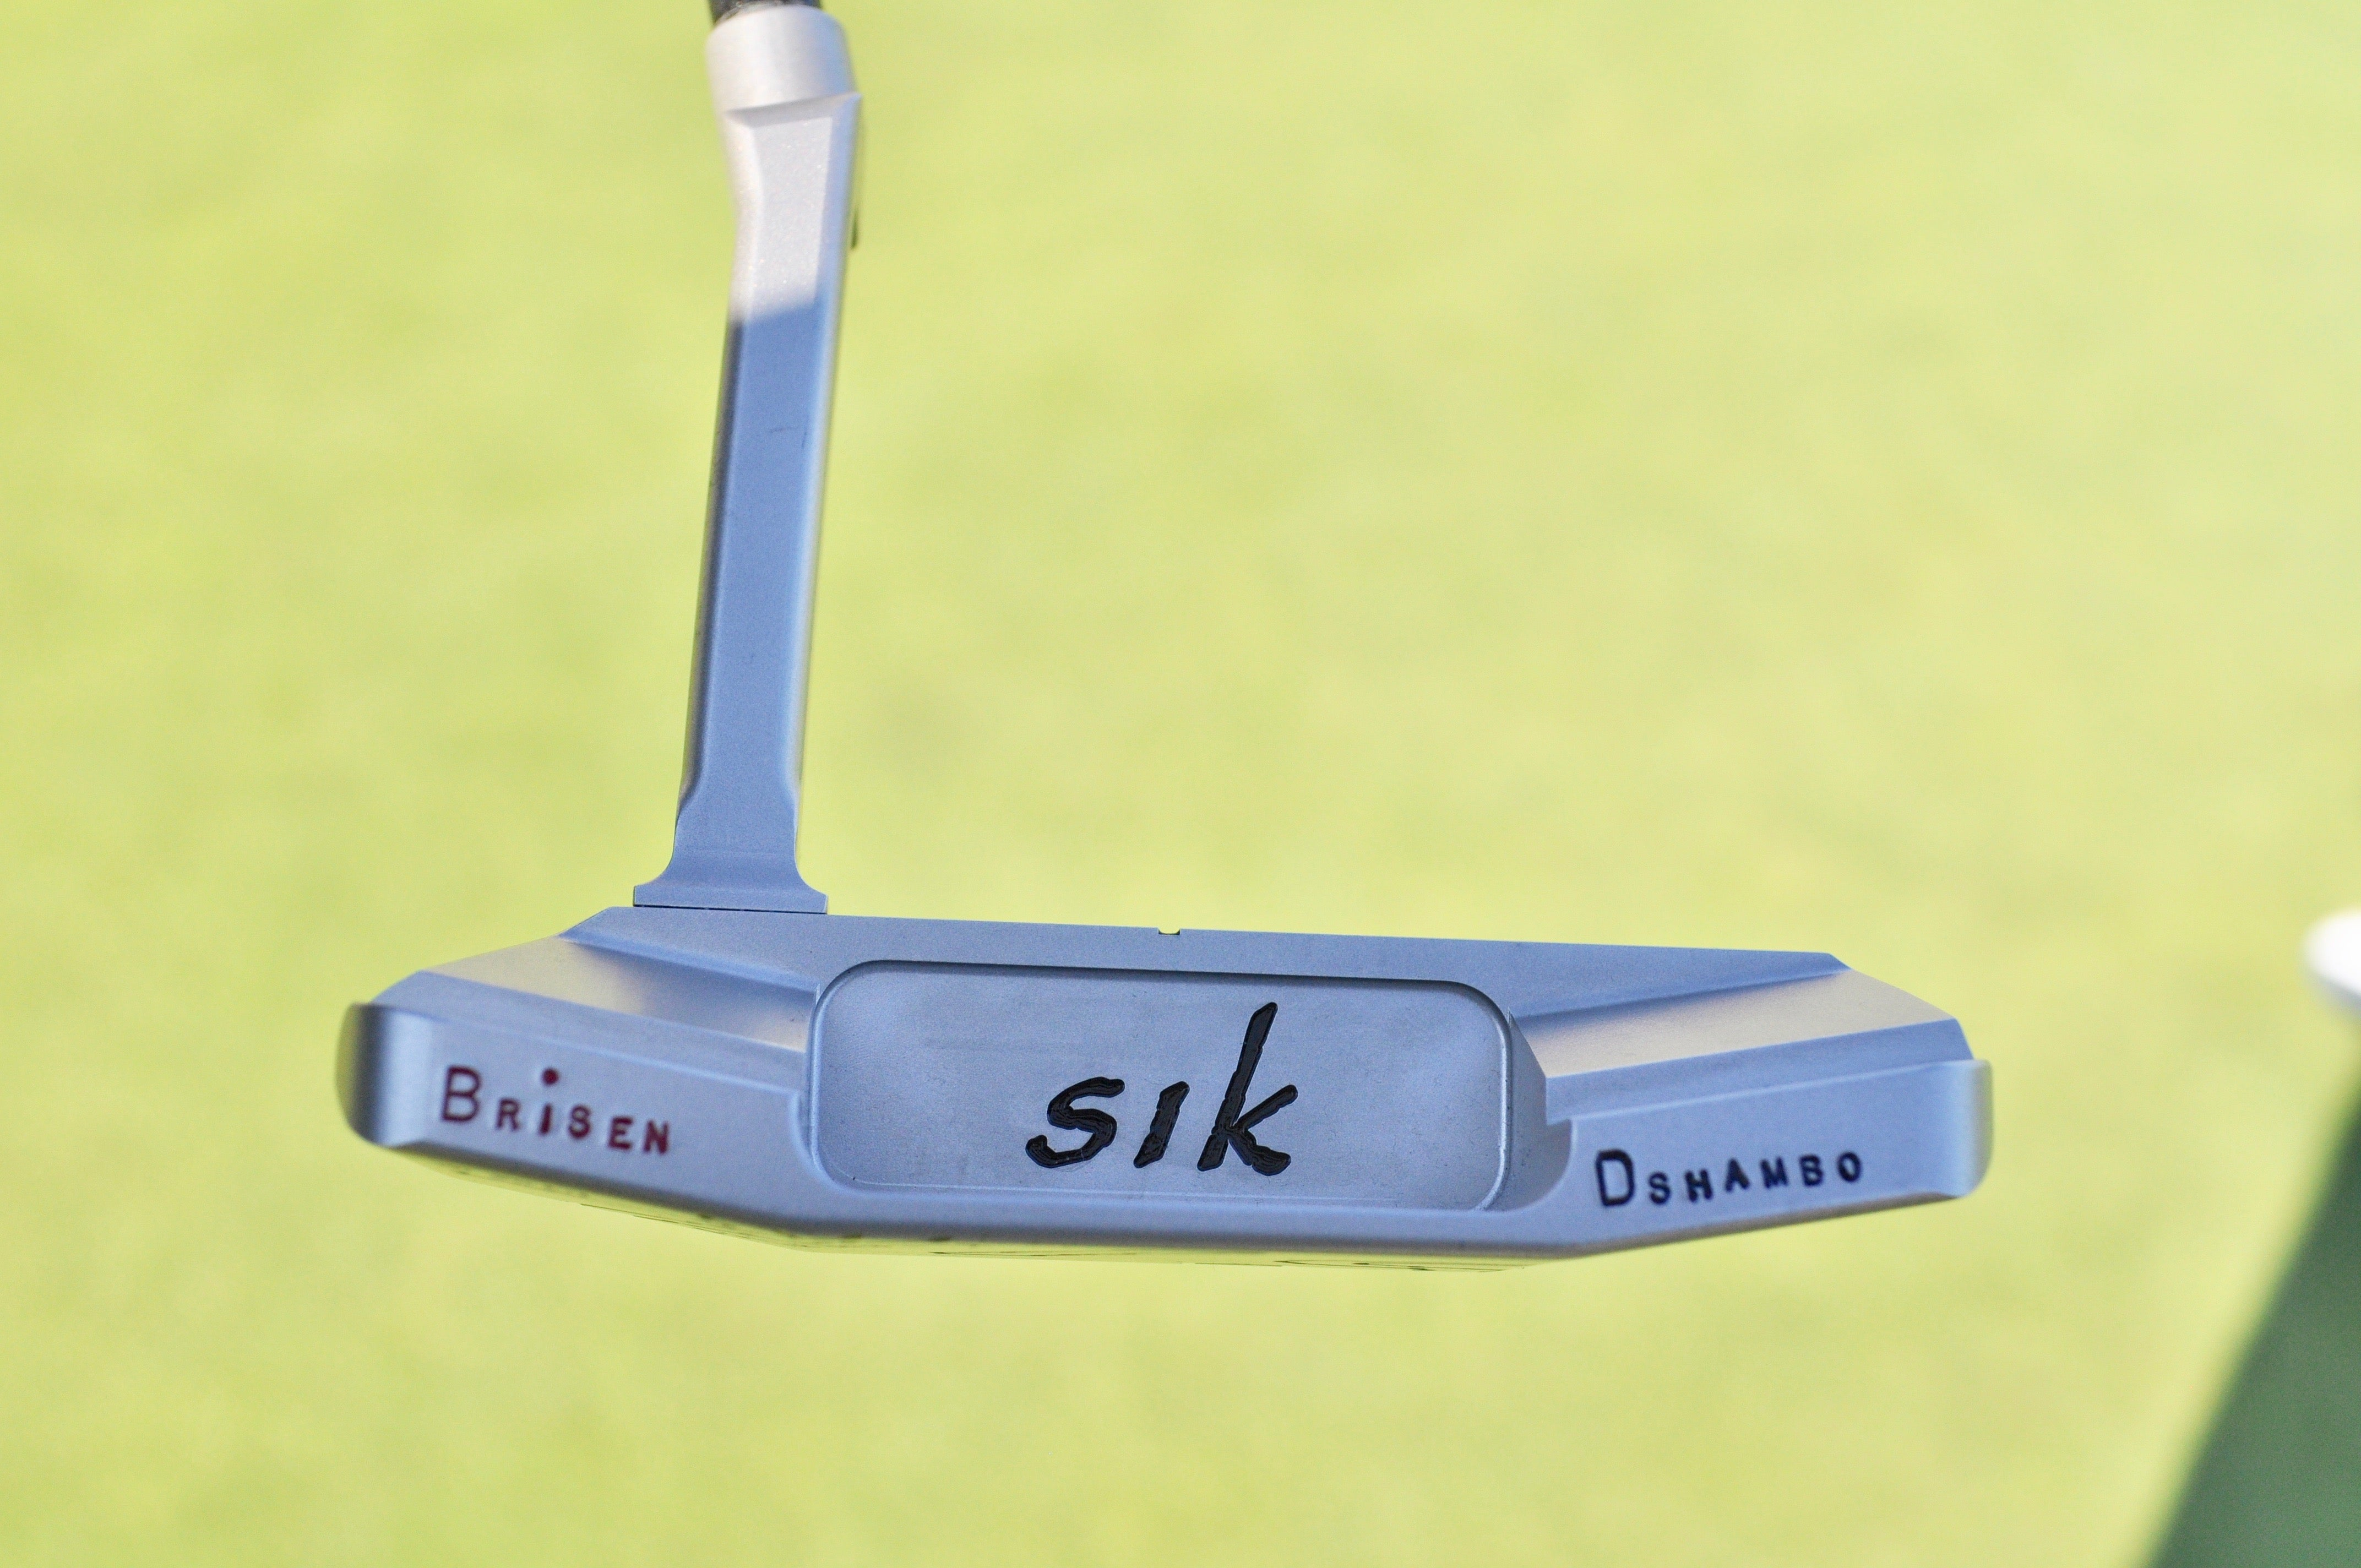 The phonetic spelling of Bryson DeChambeau's name is stamped on the bumpers of this Sik putter.